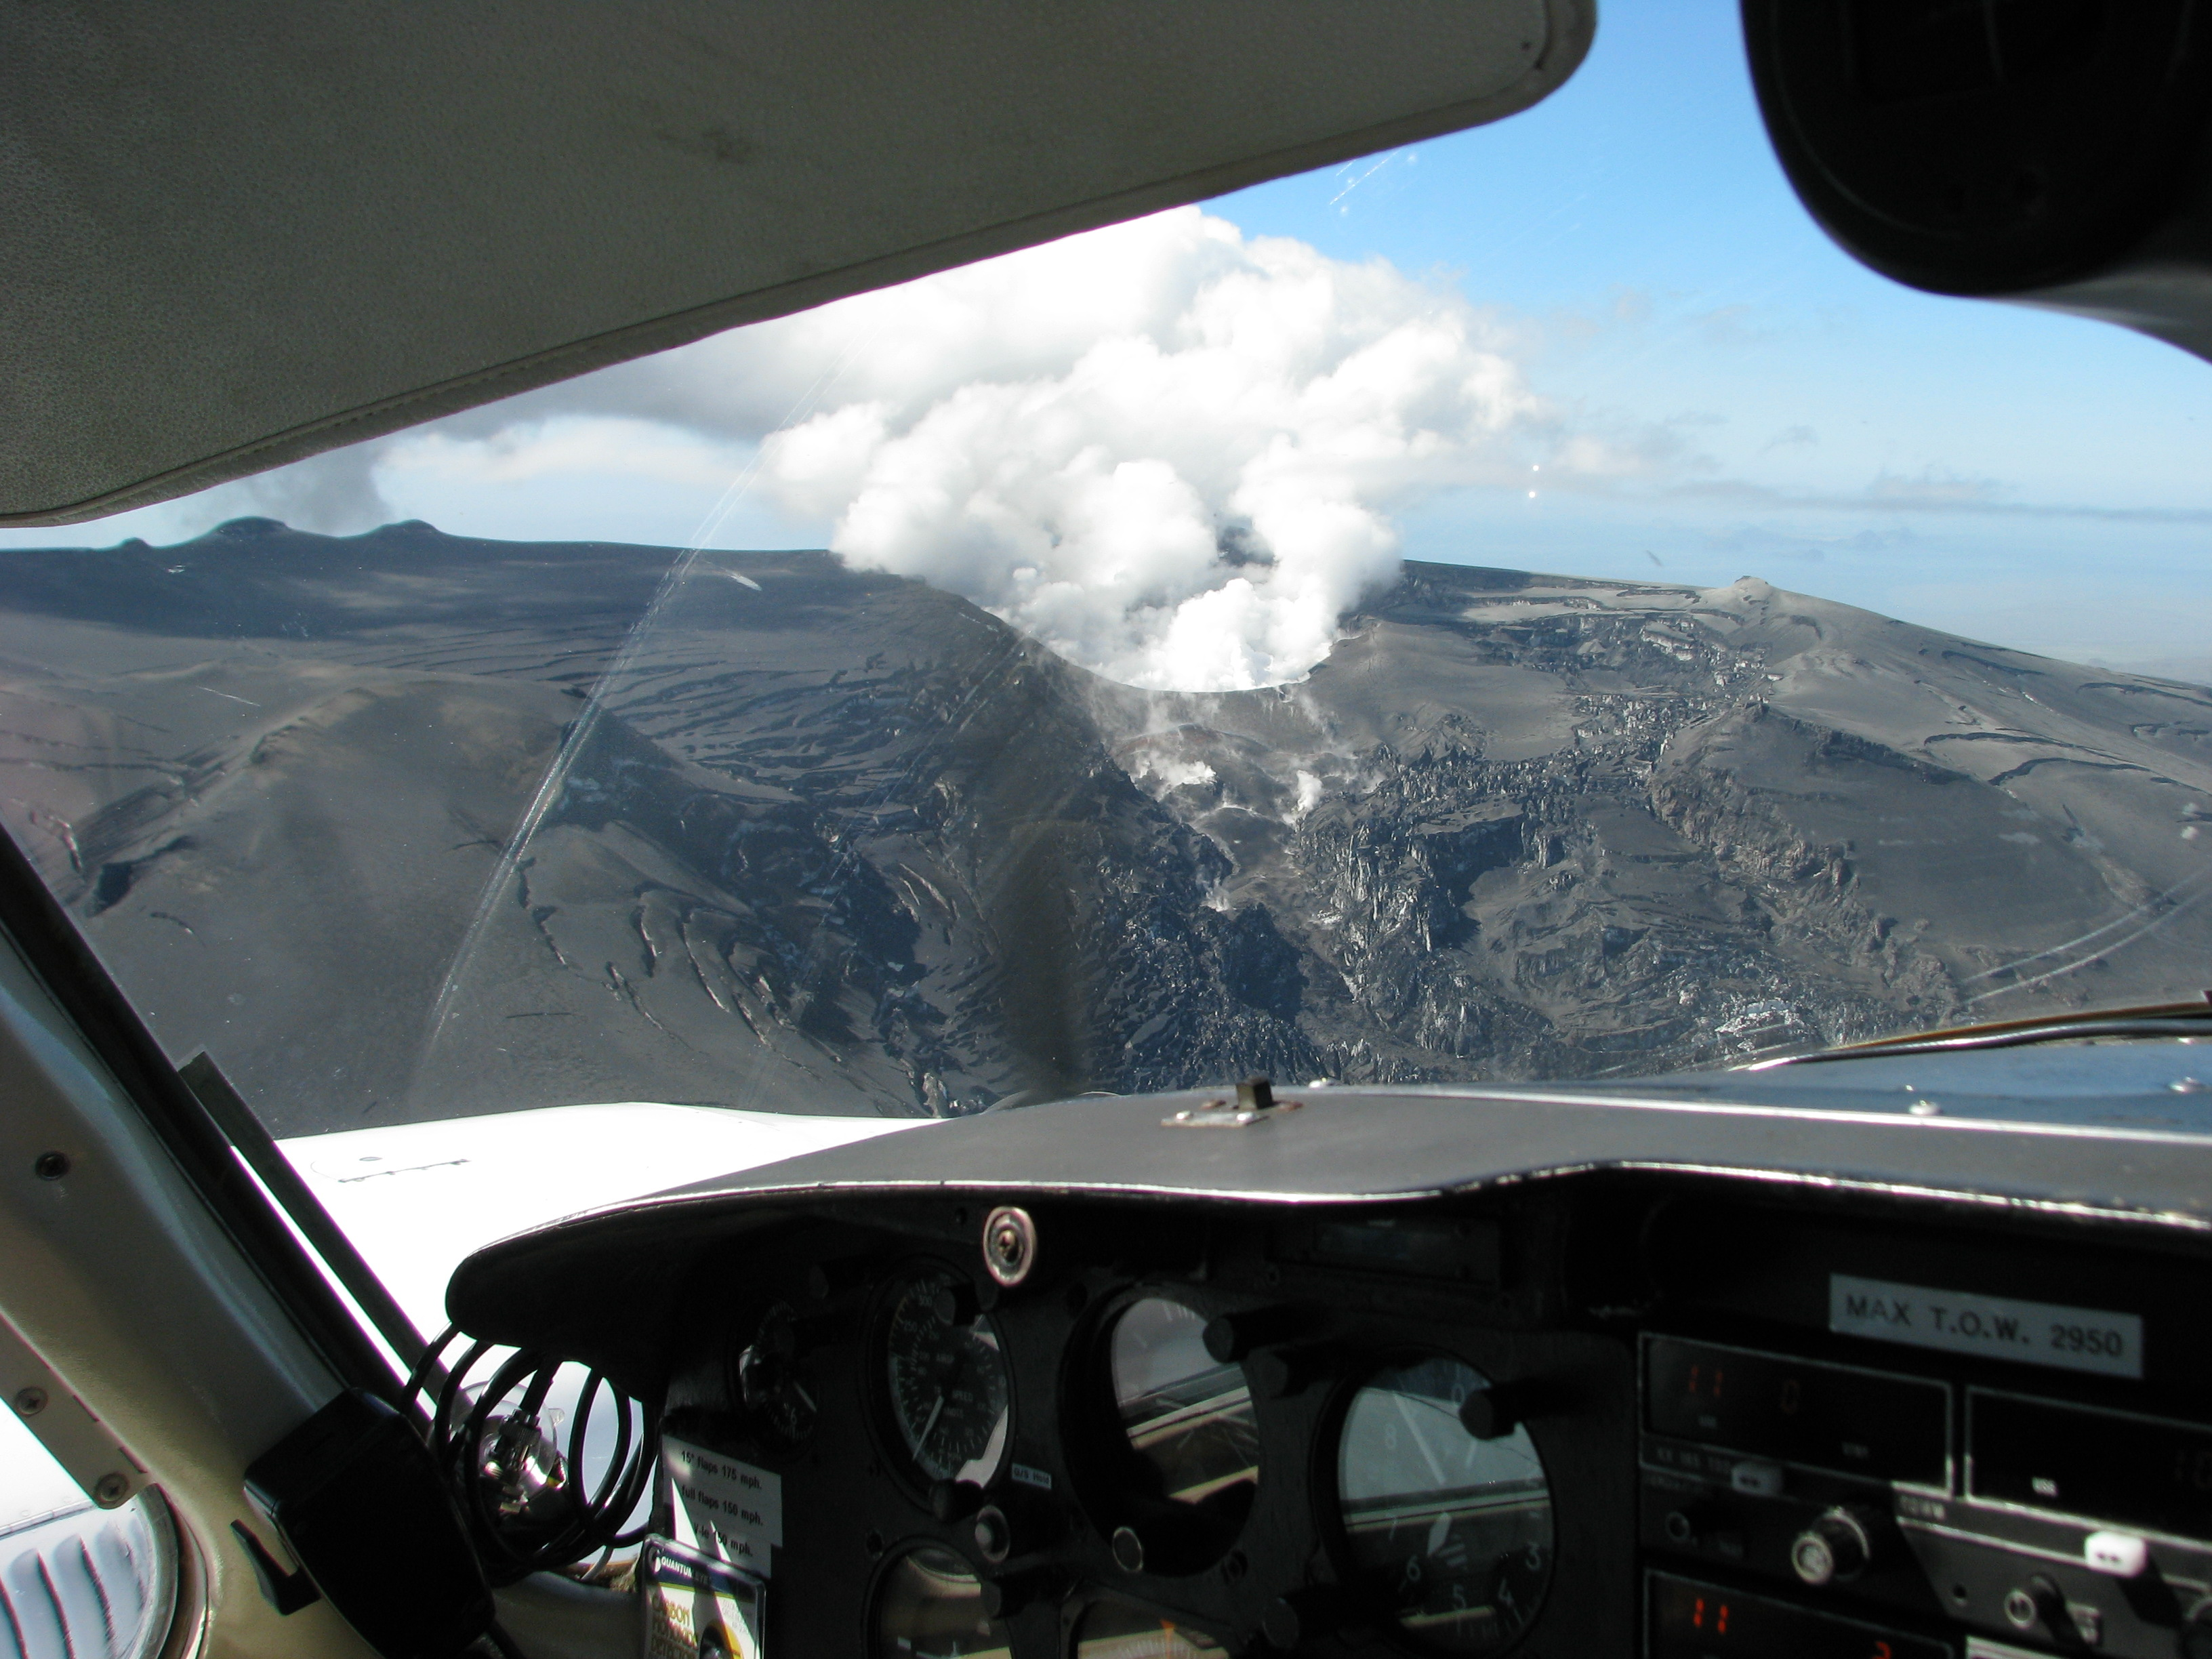 Eyjafjallajökull eruption 2010 from the plane // Source: Flightseeing.is